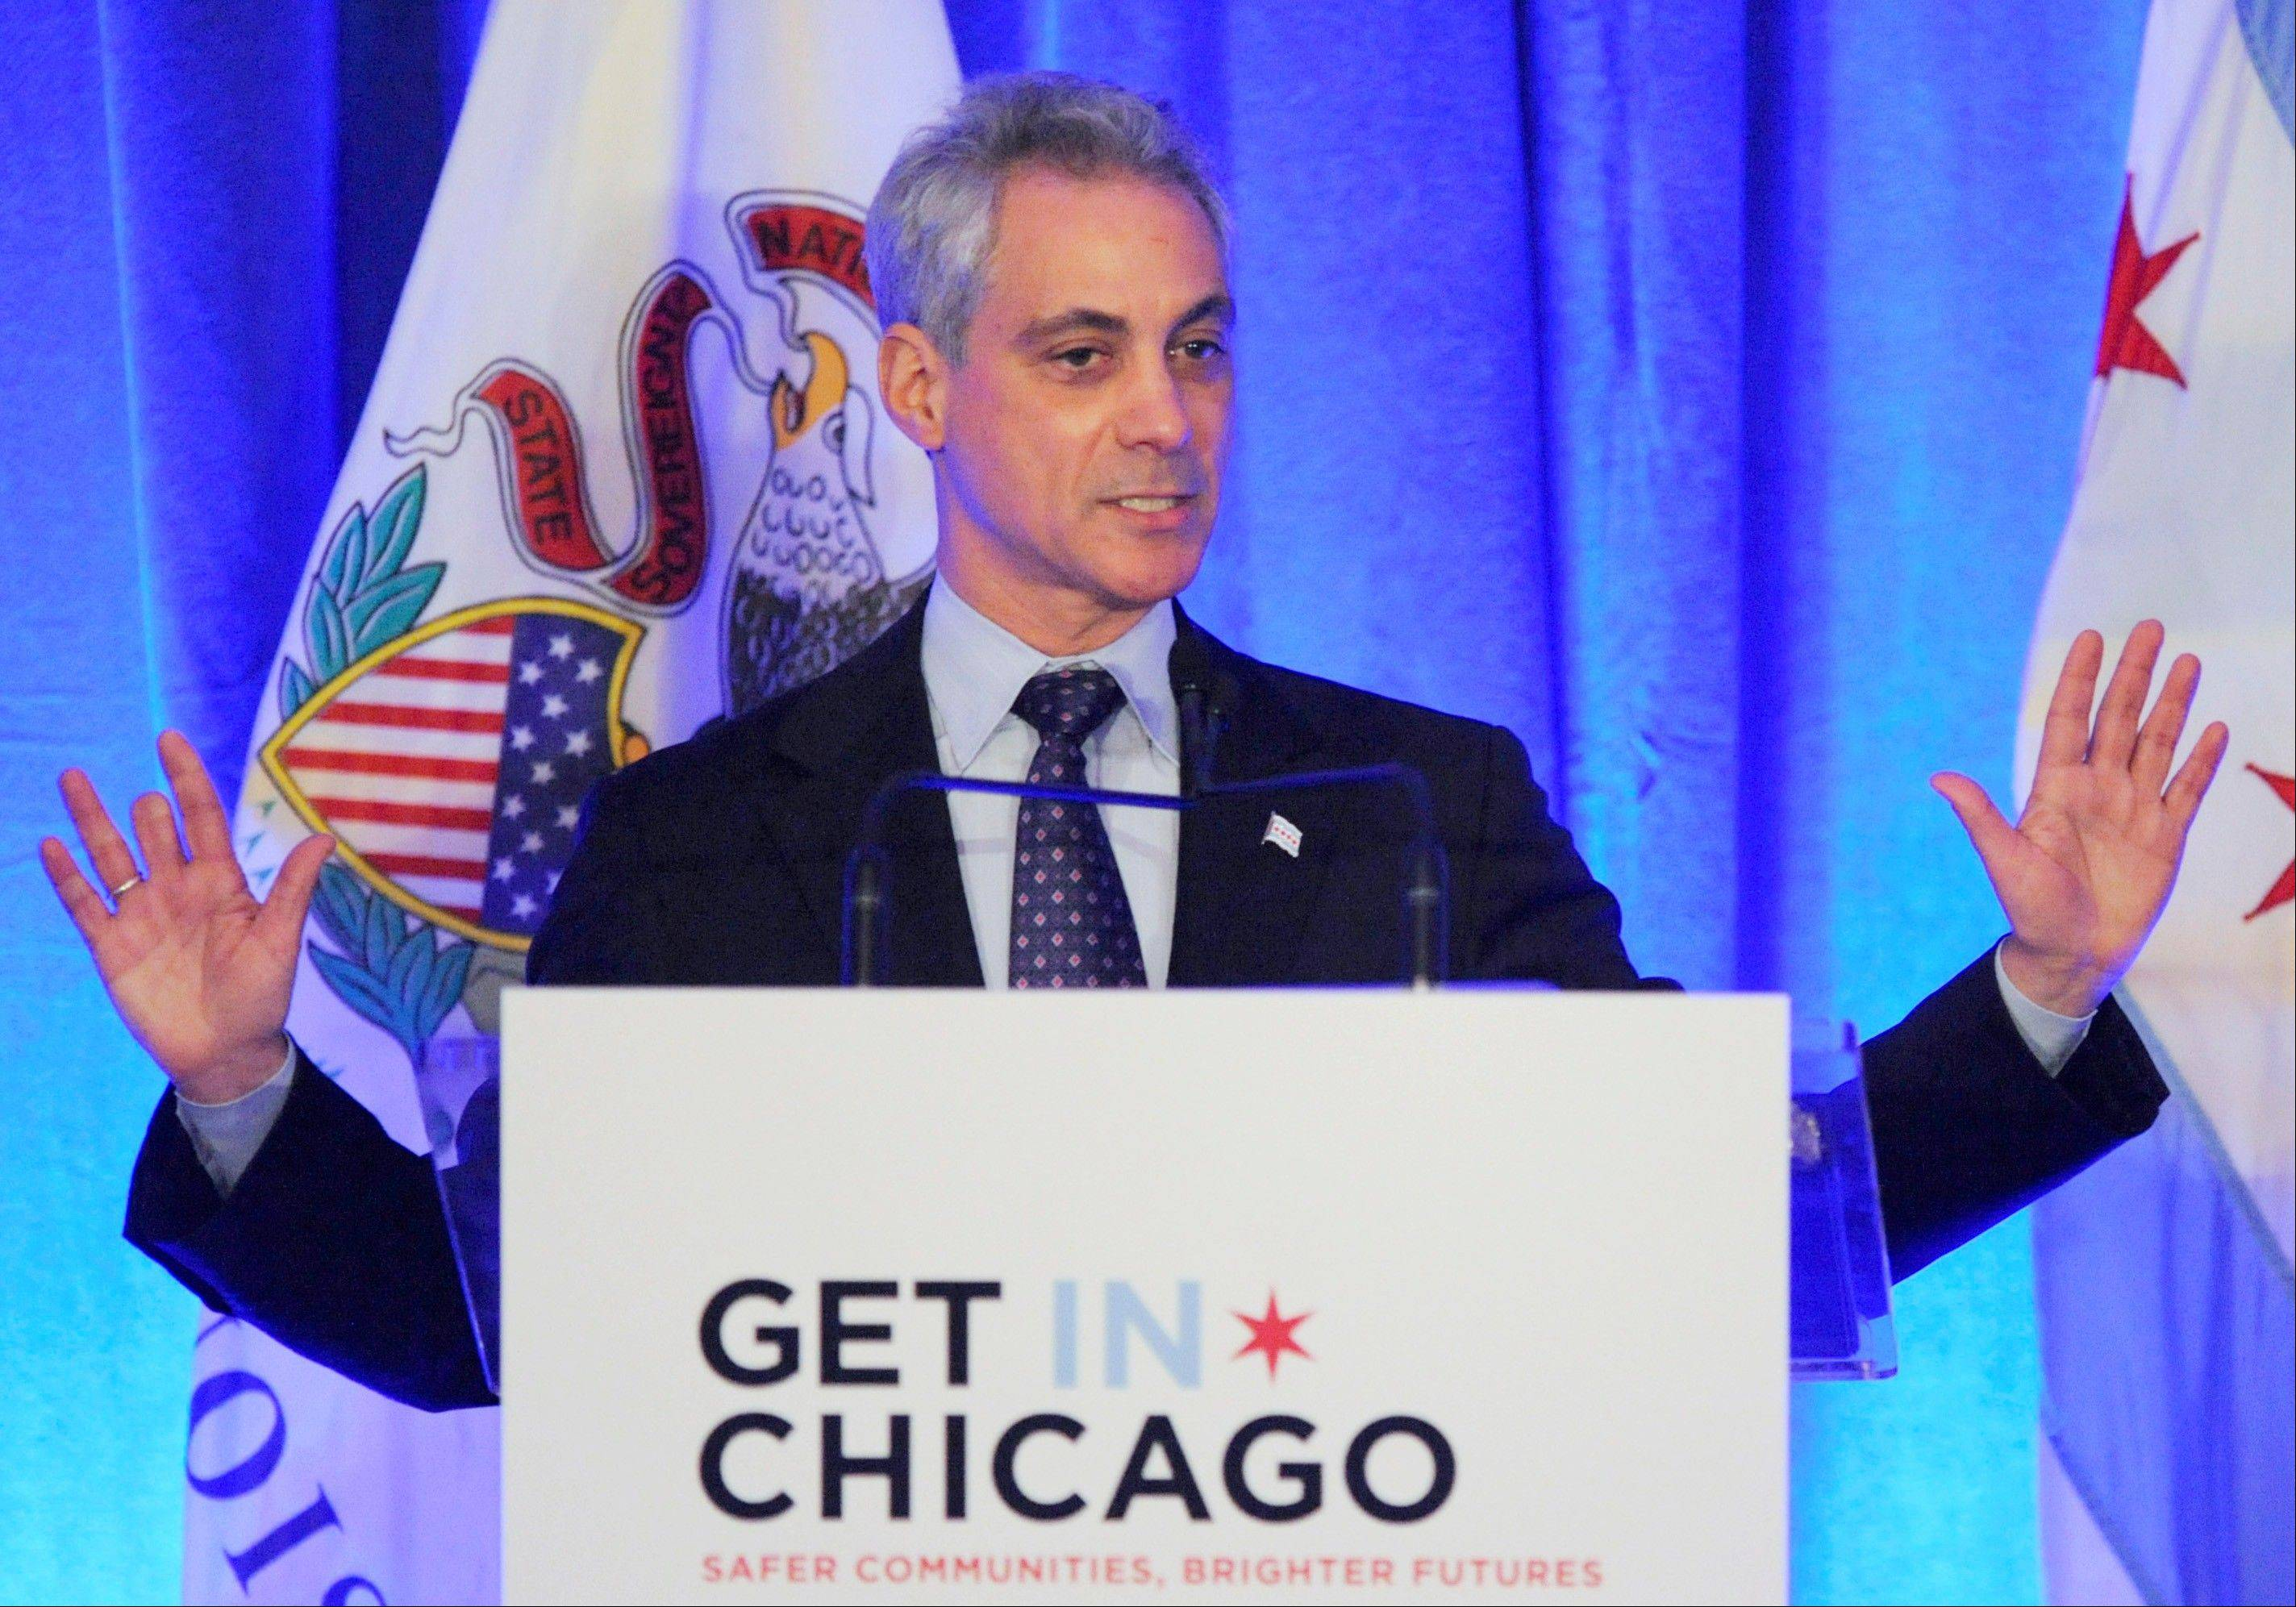 Mayor Rahm Emanuel boosted his support for a Chicago casino this week by pledging 100 percent of revenue will go to schools.